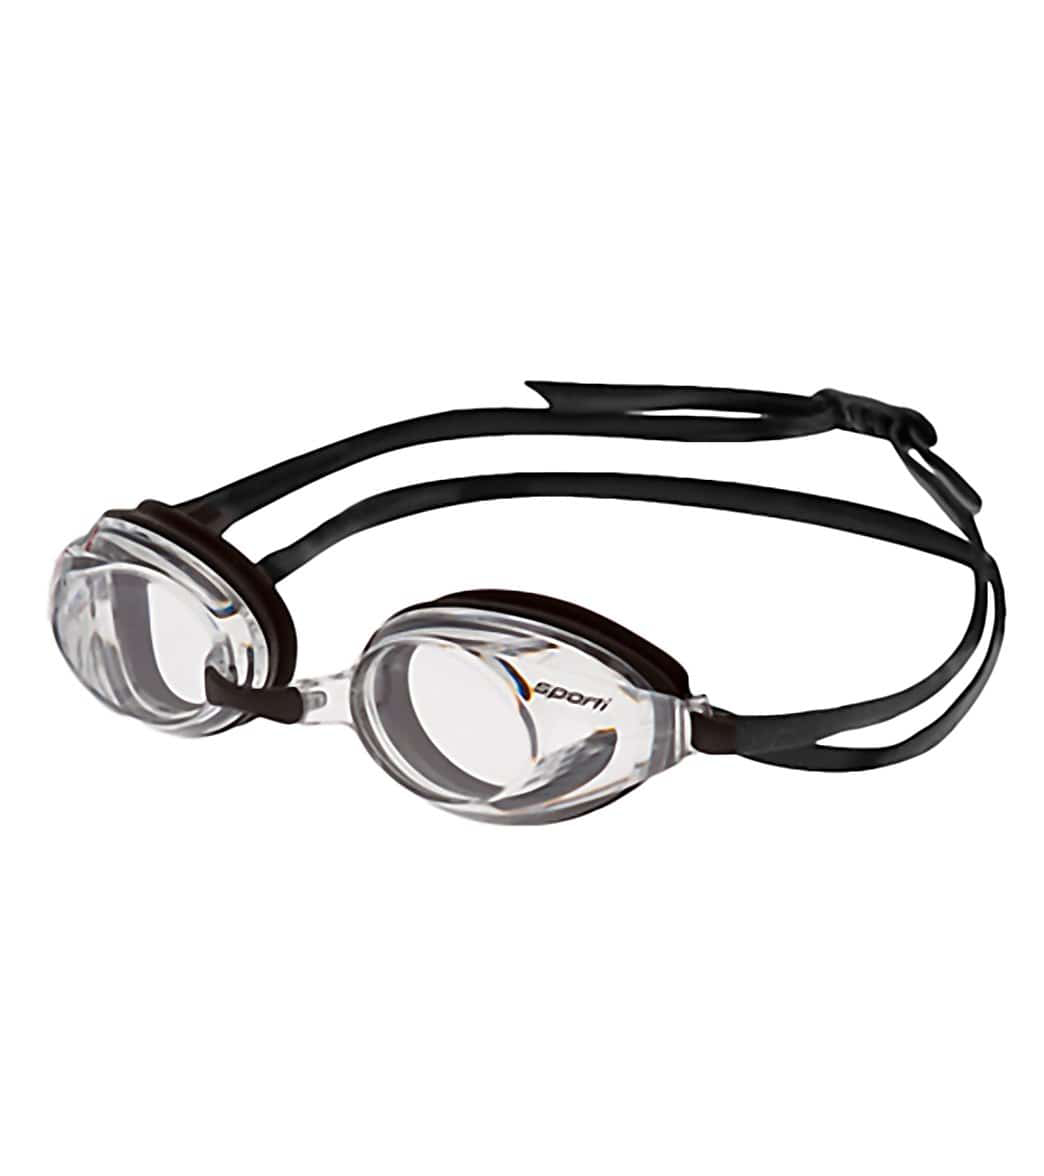 21c5c5c798 Sporti Antifog S2 Optical Goggle at SwimOutlet.com